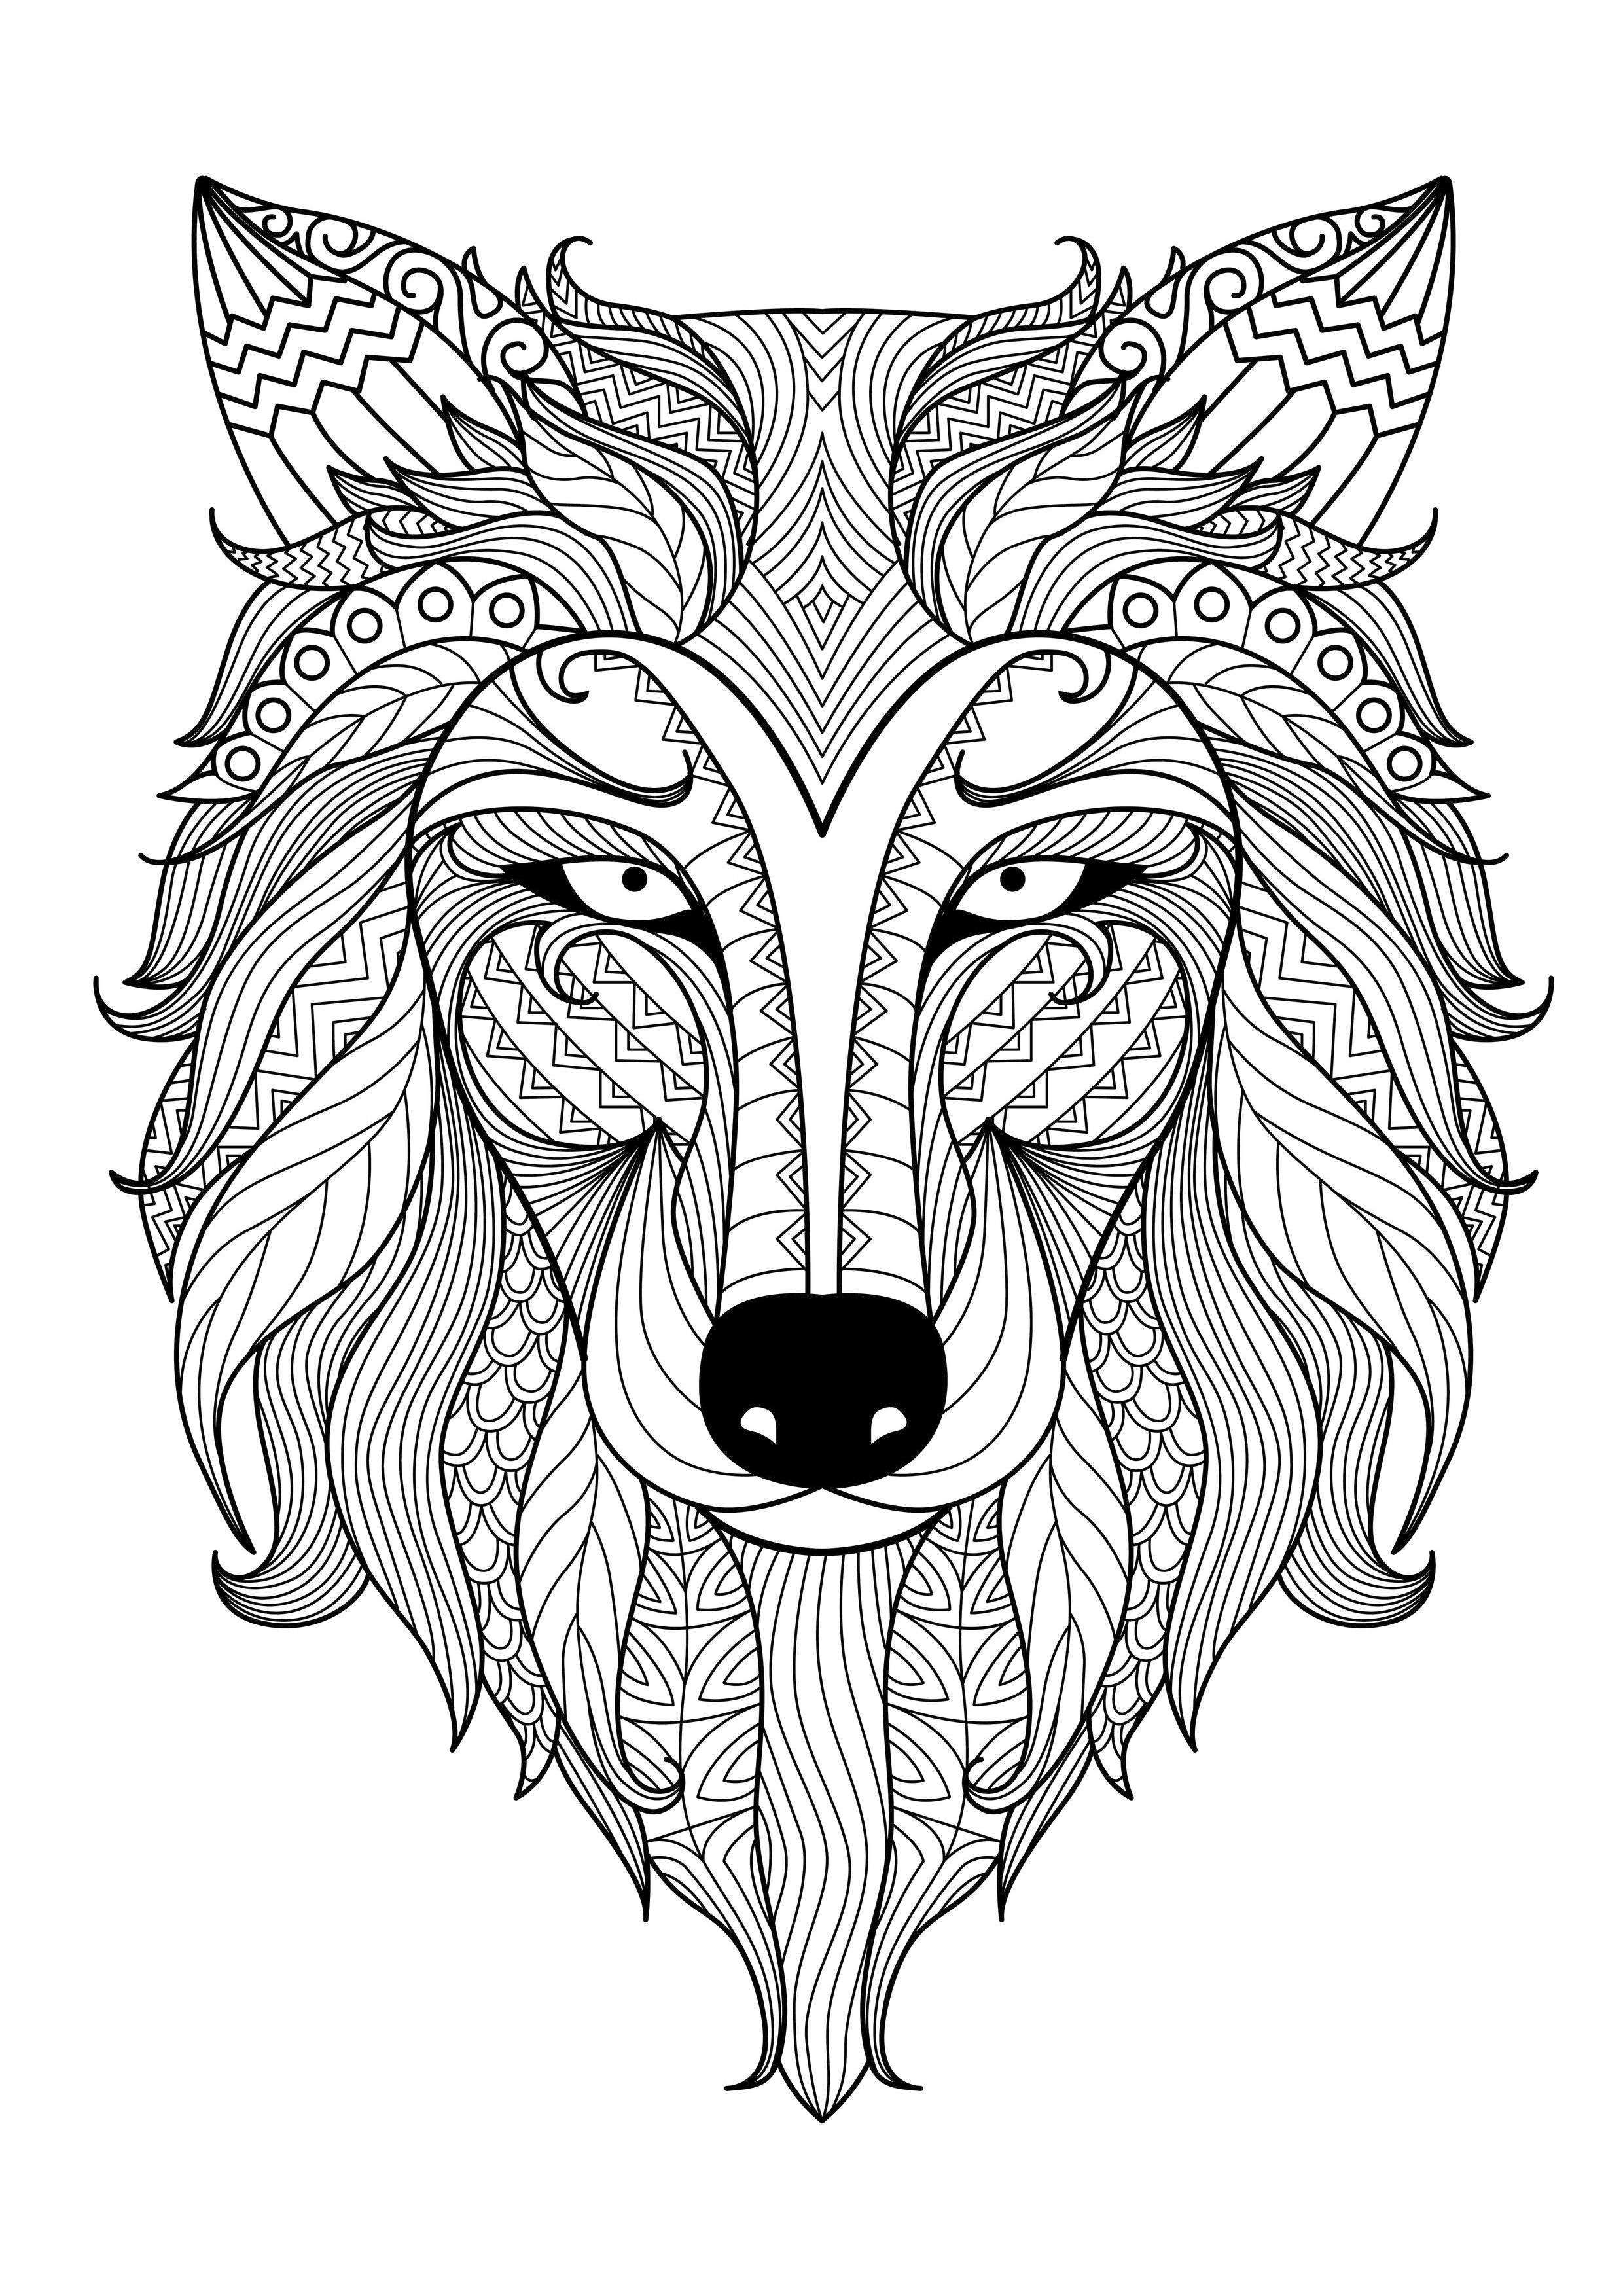 2480x3508 Adult Coloring Pages Kids Animal Patterns Download